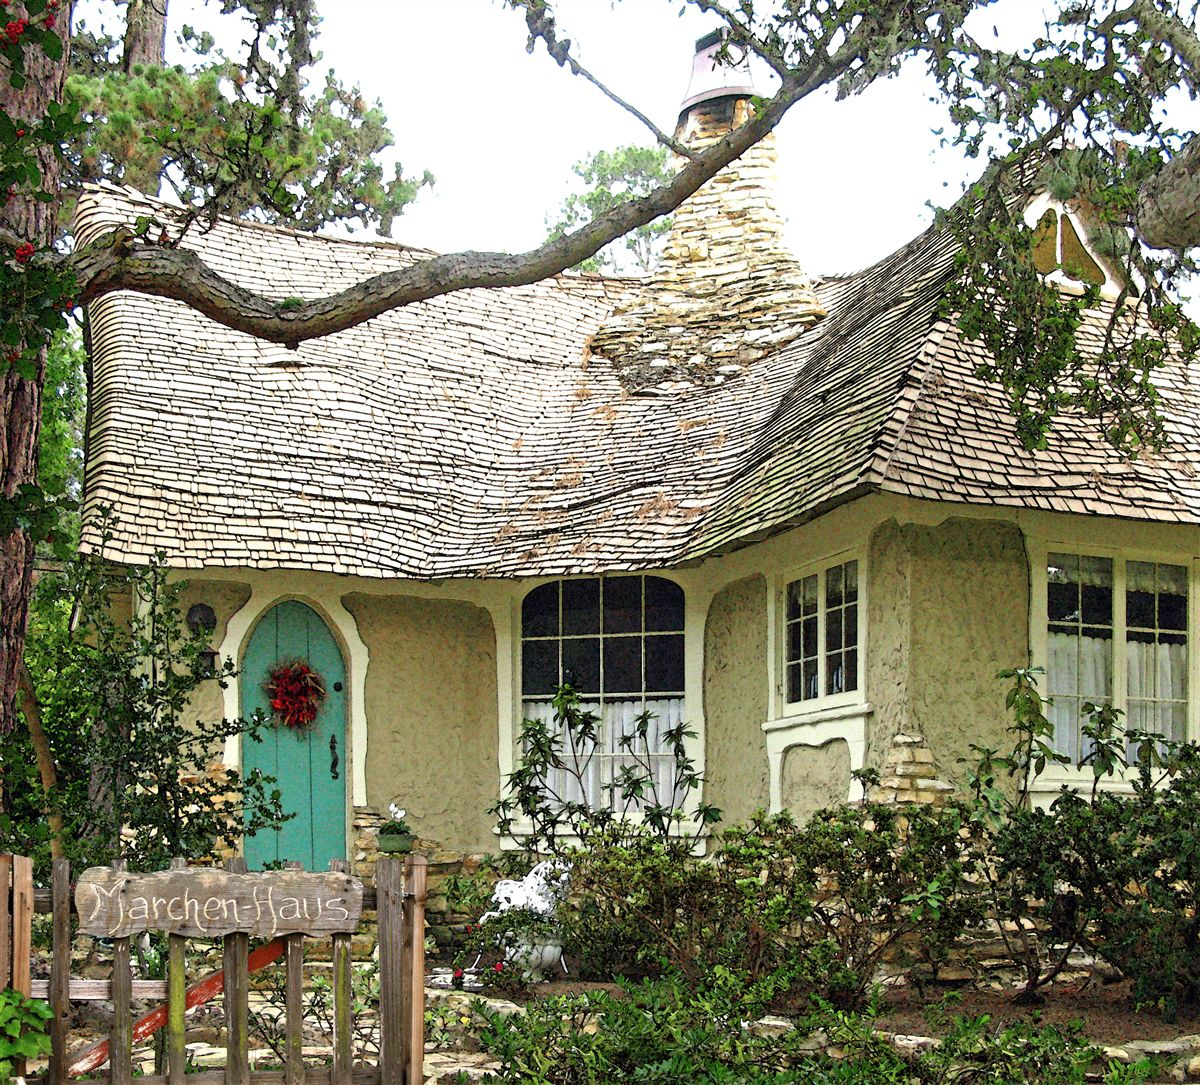 Fairytale cottages by the sea